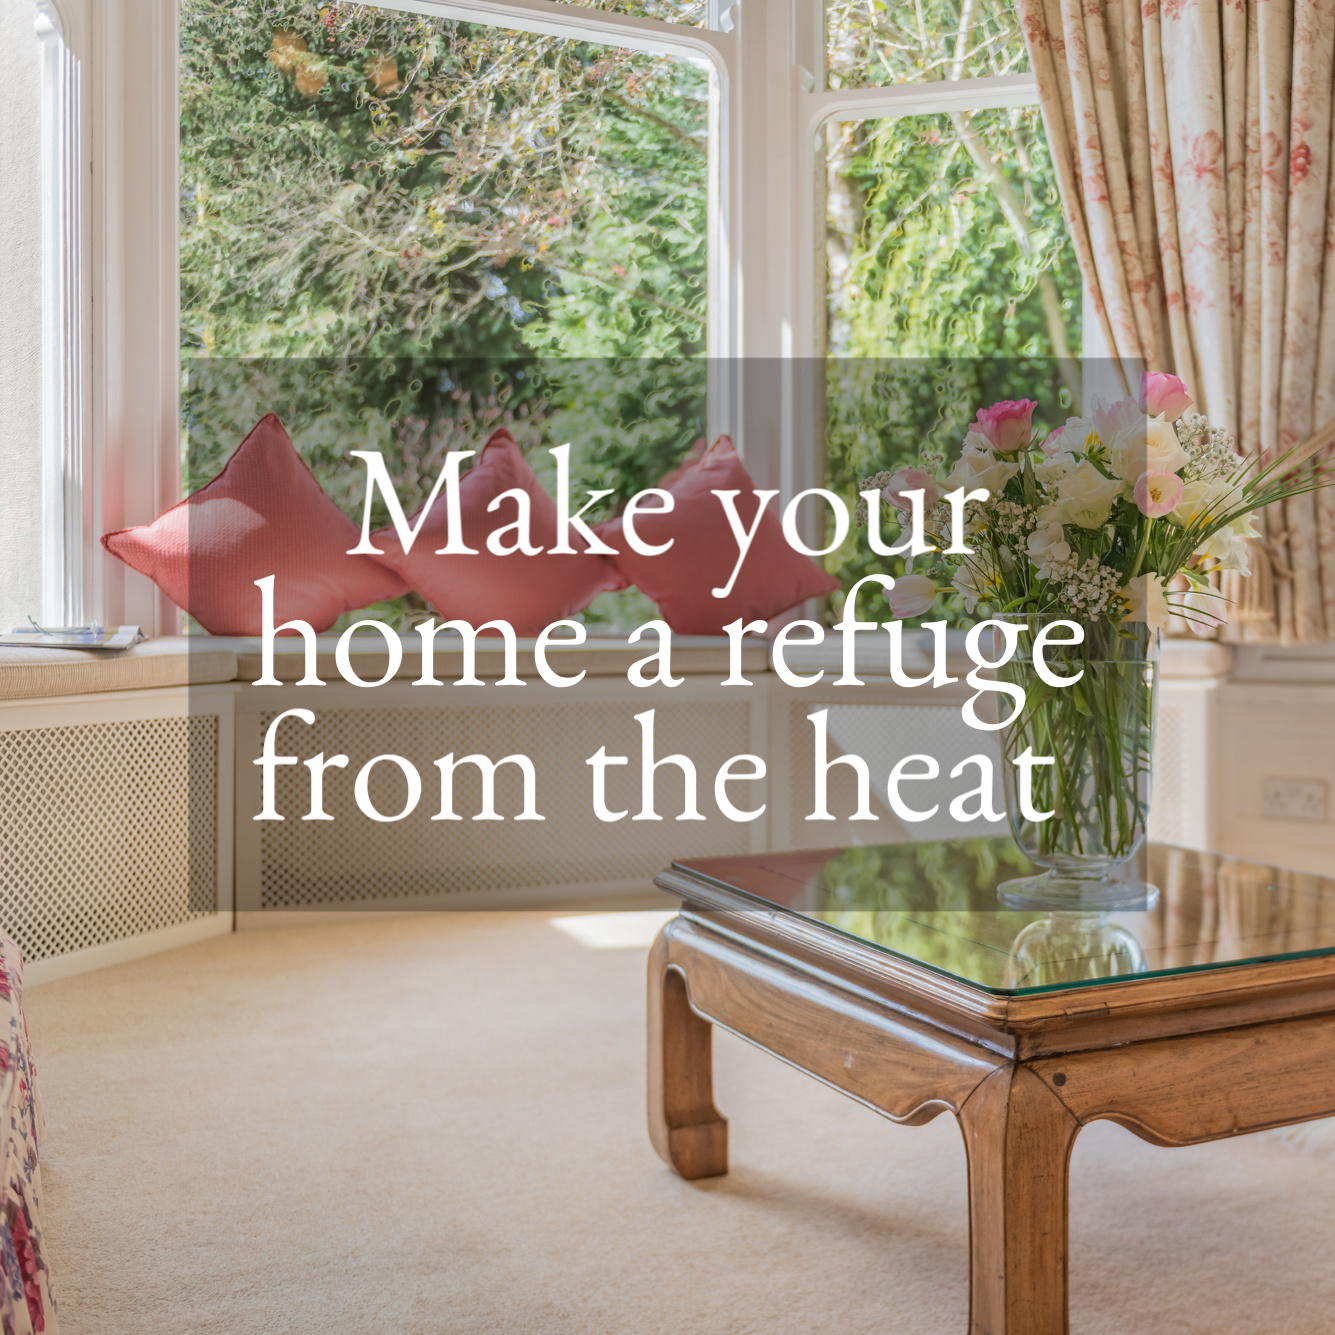 tg4-make-your-home-a-refuge-from-the-heat